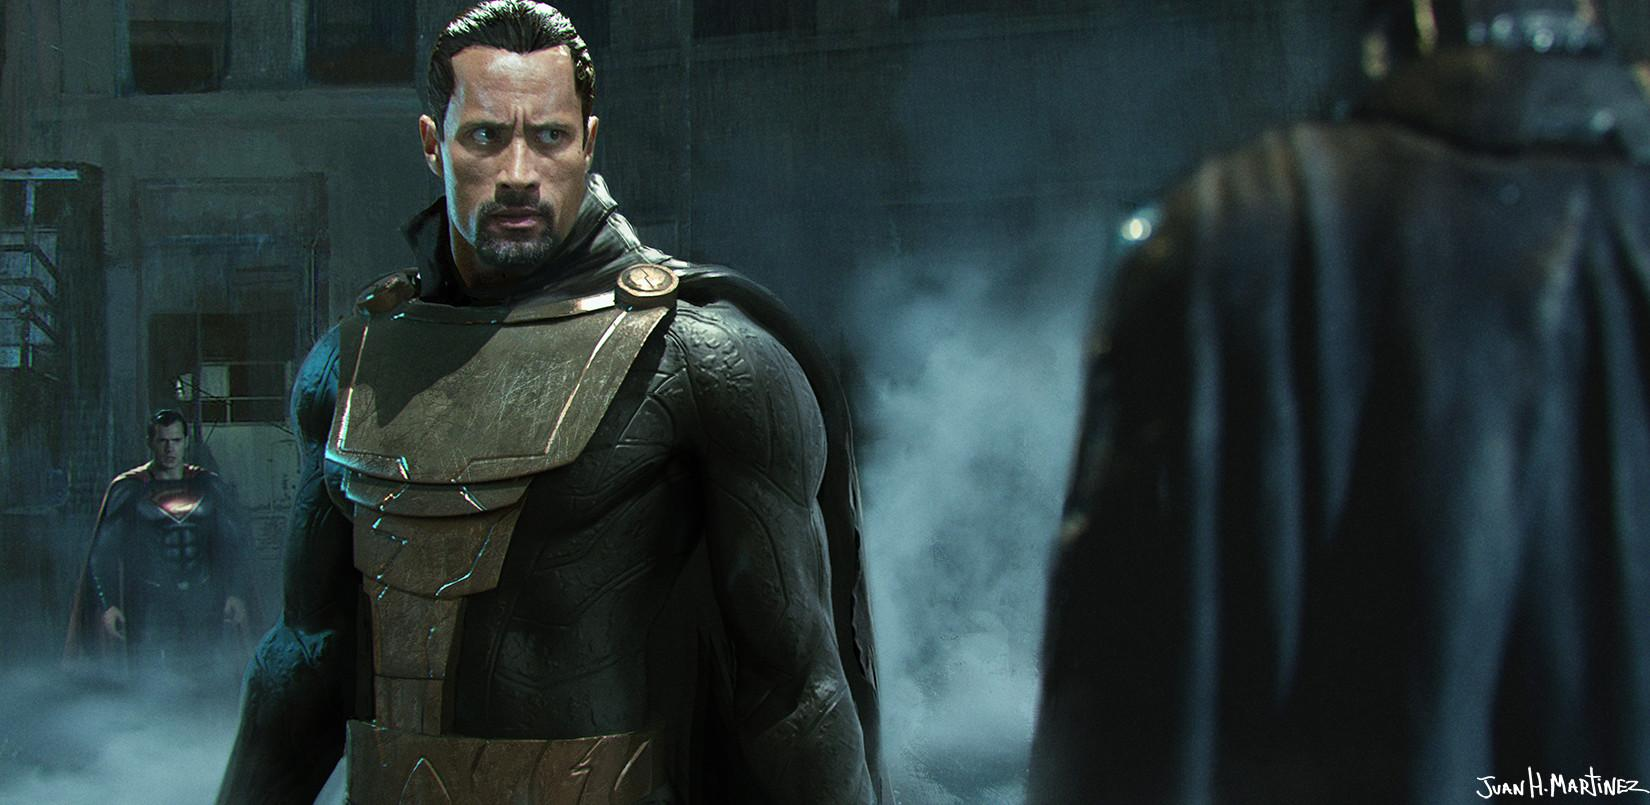 Shazam - Dwayne Johnson en Black Adam va avoir son propre film !